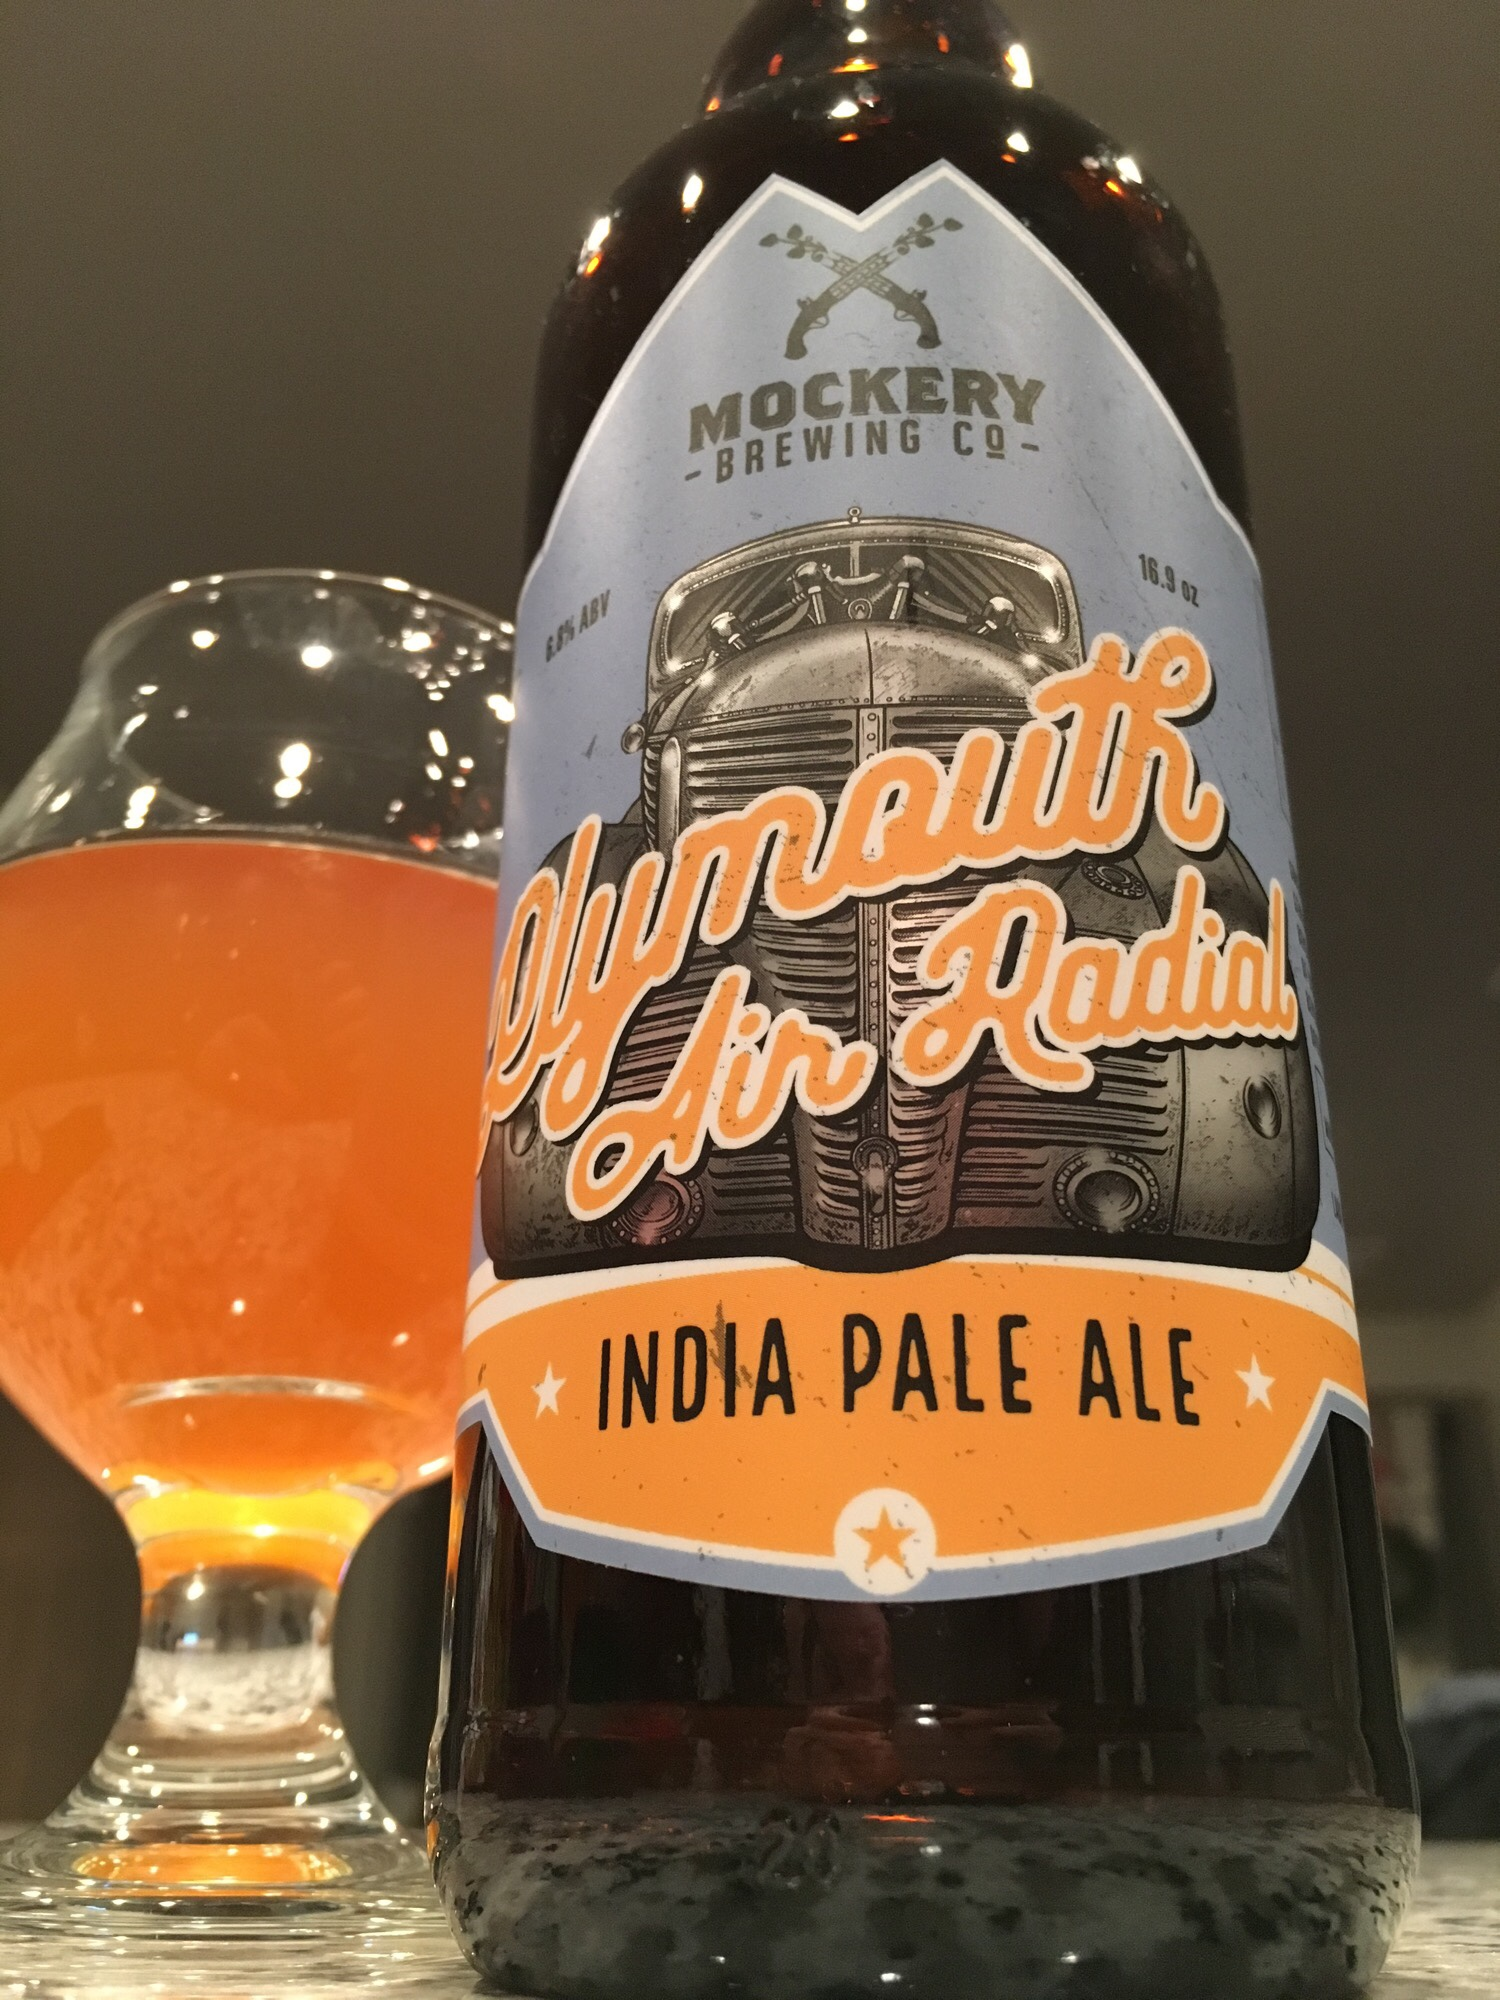 mockery-brewing-co-plymouth-air-radial